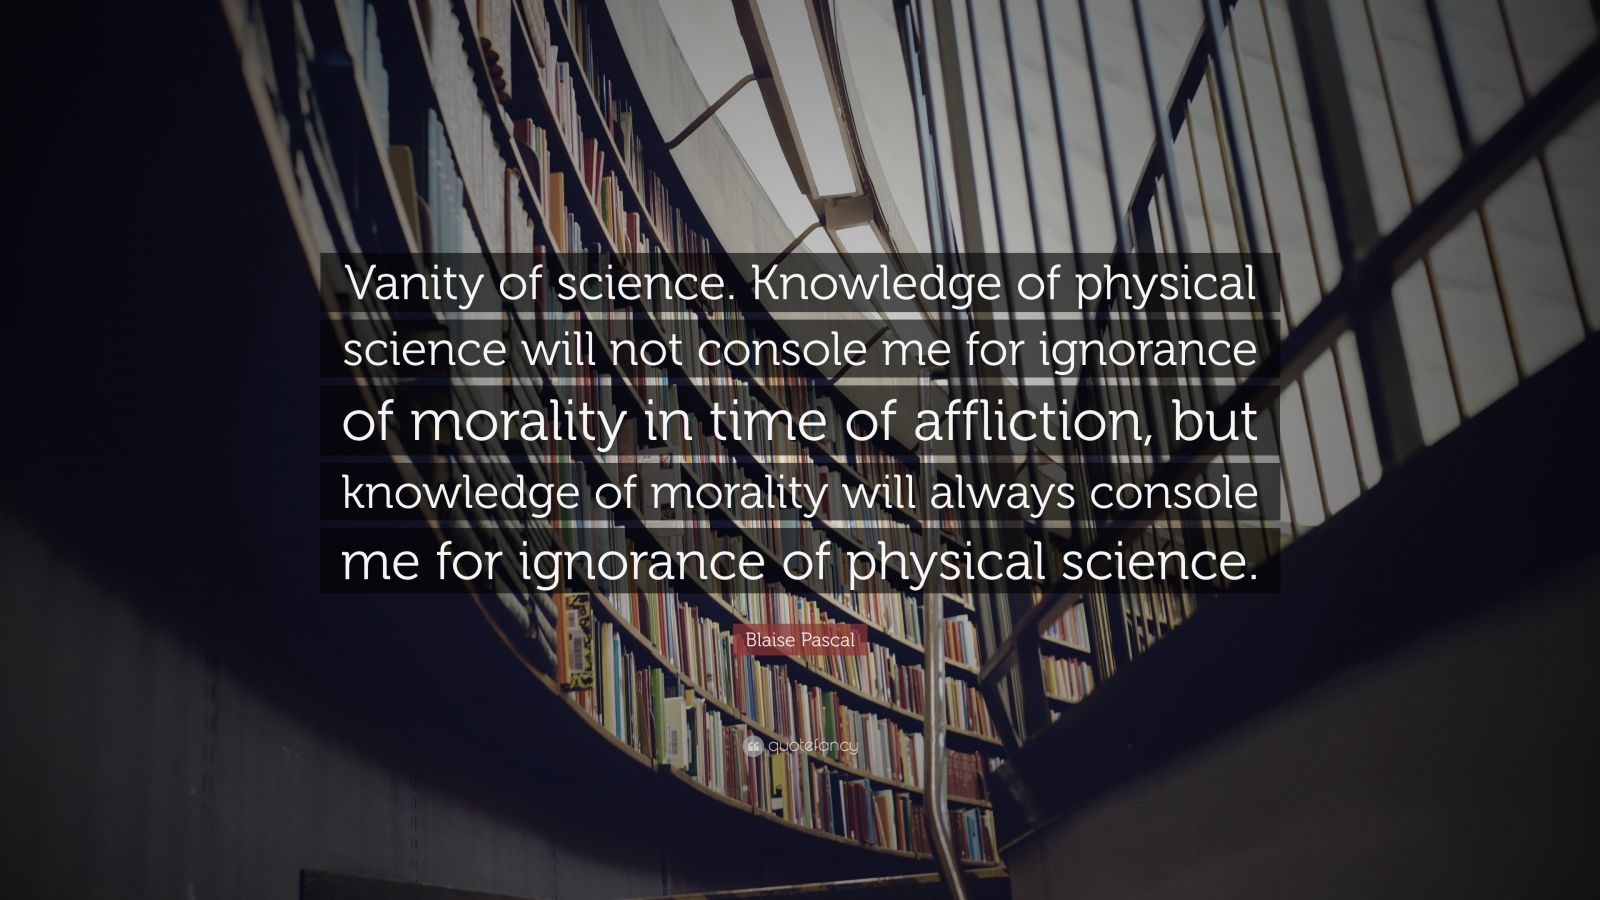 """Blaise Pascal Quote: """"Vanity of science. Knowledge of physical science will not console me for ignorance of morality in time of affliction, but knowledge of morality will always console me for ignorance of physical science."""""""